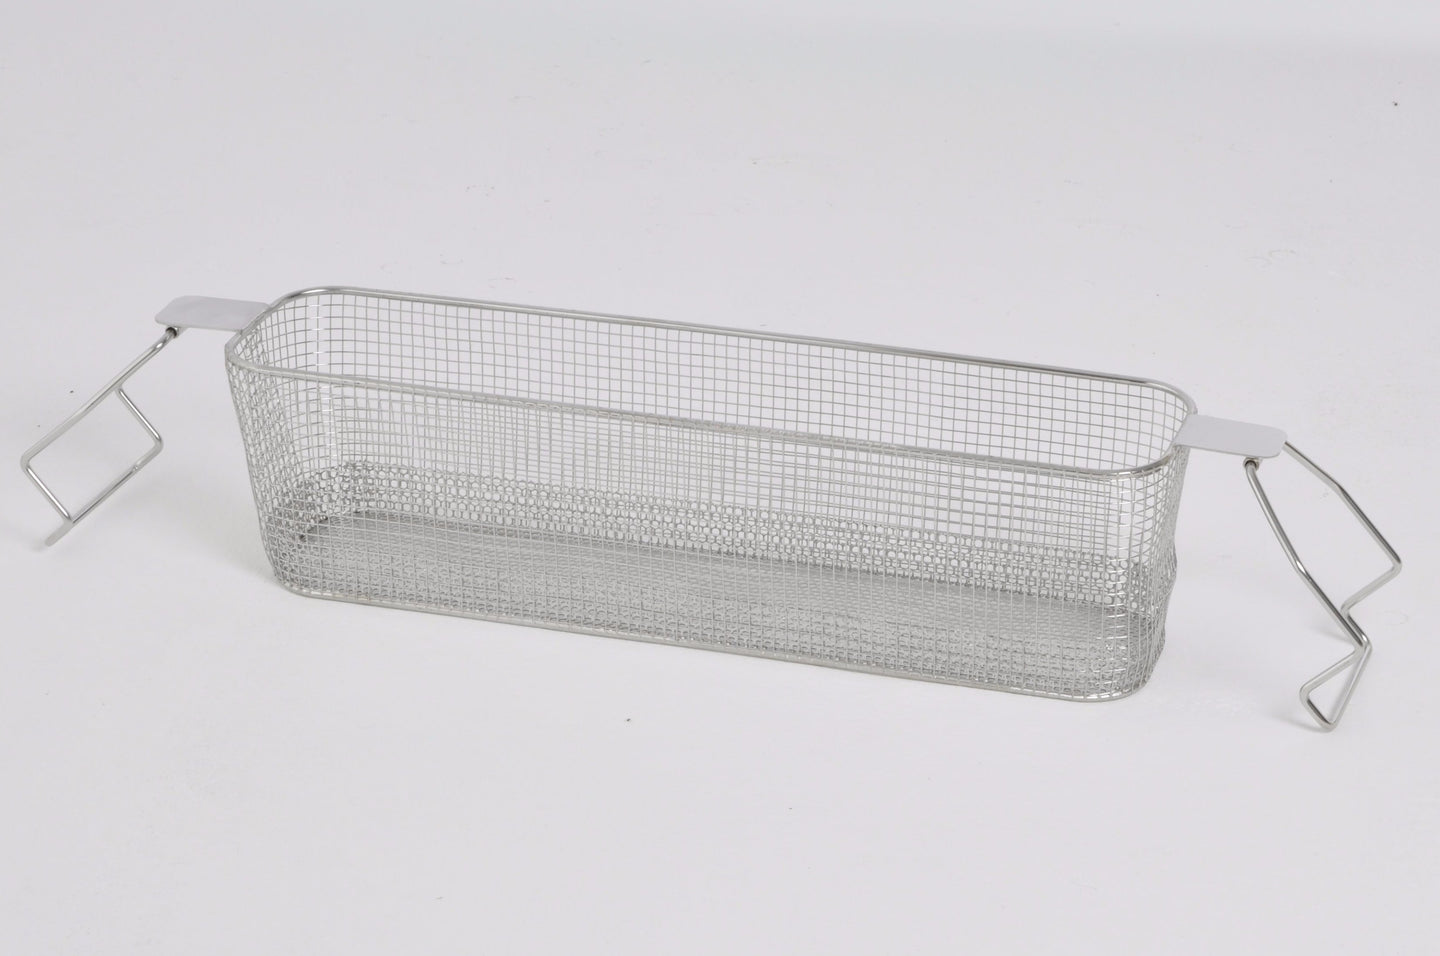 Crest Perforated Stainless Steel Basket for P1200 | SSPB1200DH - leadsonics